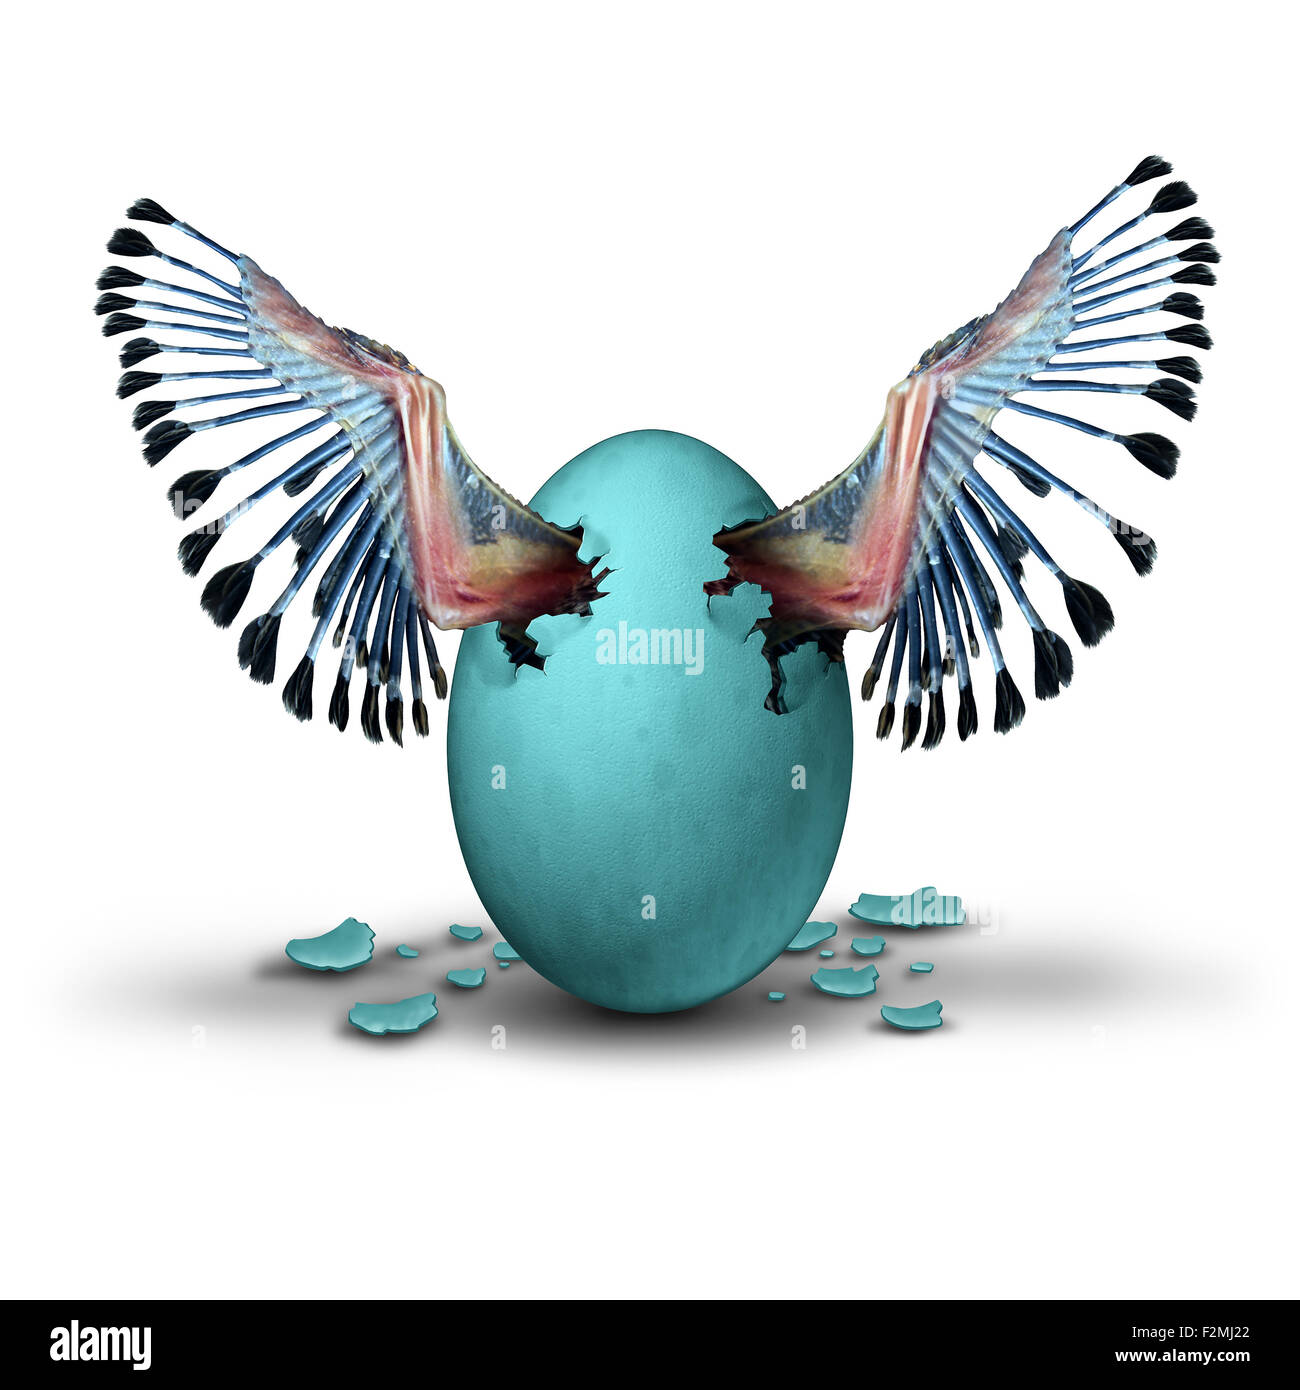 Premature start concept and impatient ambition business metaphor as the young wings of a baby bird emerging and - Stock Image